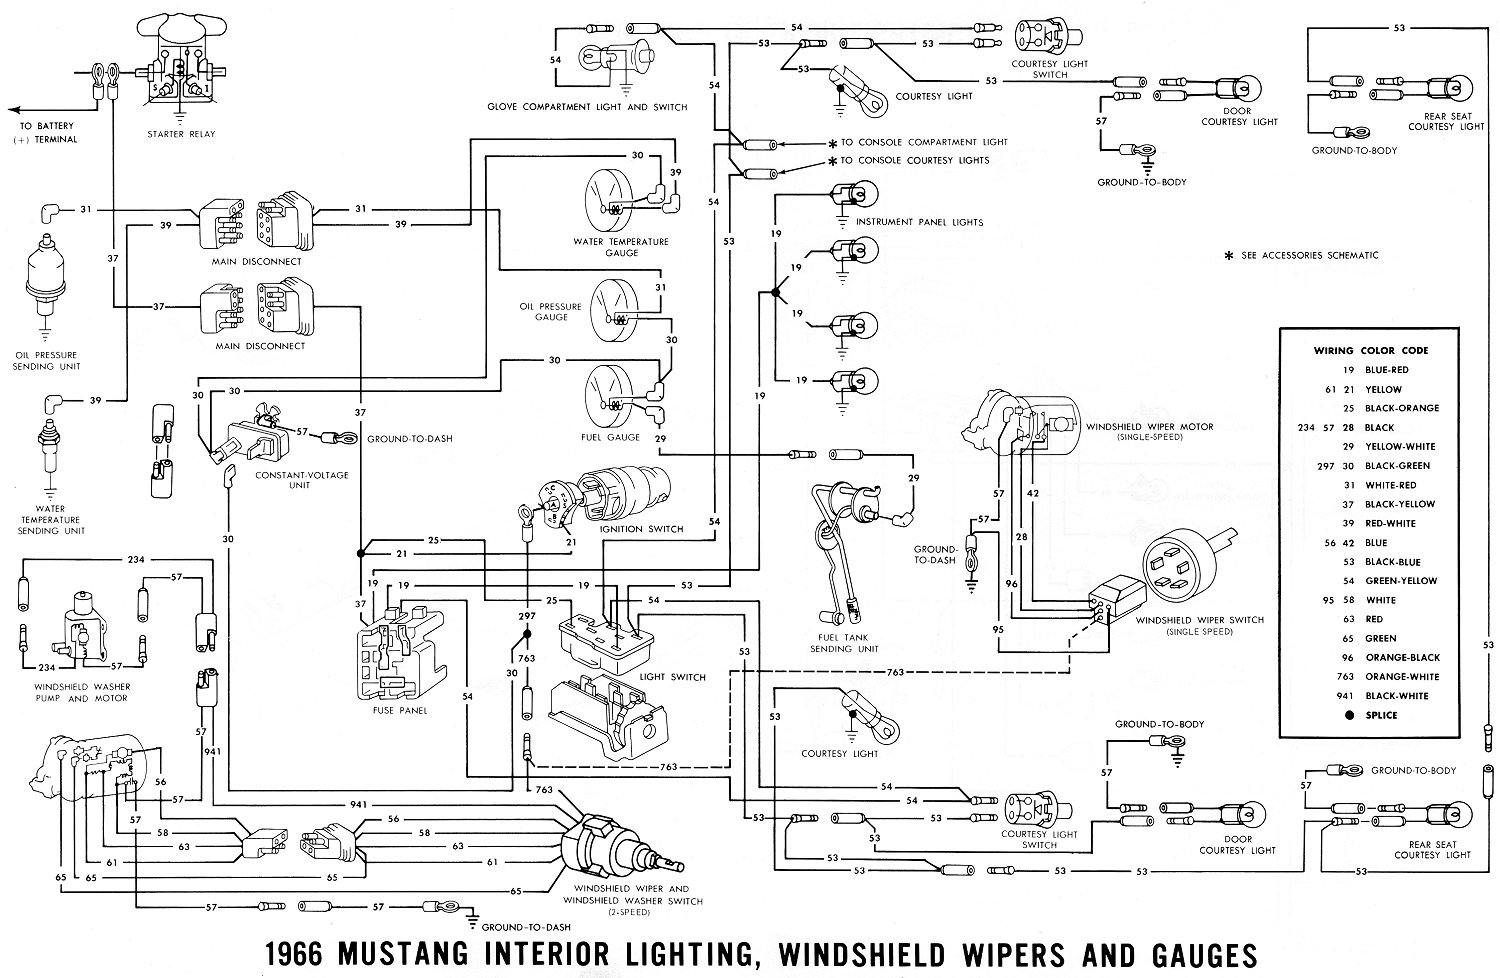 1966 Mustang Turn Signal Wiring Diagram - 17.5.depo-aqua.de • on motorcycle led turn signals, motorcycle turn signal speaker, motorcycle wiring schematics, simple turn signal diagram, motorcycle trailer wiring, motorcycle signal lights, gm turn signal switch diagram, motorcycle hand signals, motorcycle ignition wiring, motorcycle turn signal installation, motorcycle diagram with label, turn signal schematic diagram, motorcycle coil wiring, motorcycle mini turn signals, motorcycle turn signal wiring kit, motorcycle turn signal parts, motorcycle turn signal connector, basic motorcycle diagram, motorcycle turn signal circuit, motorcycle turn signal bracket,